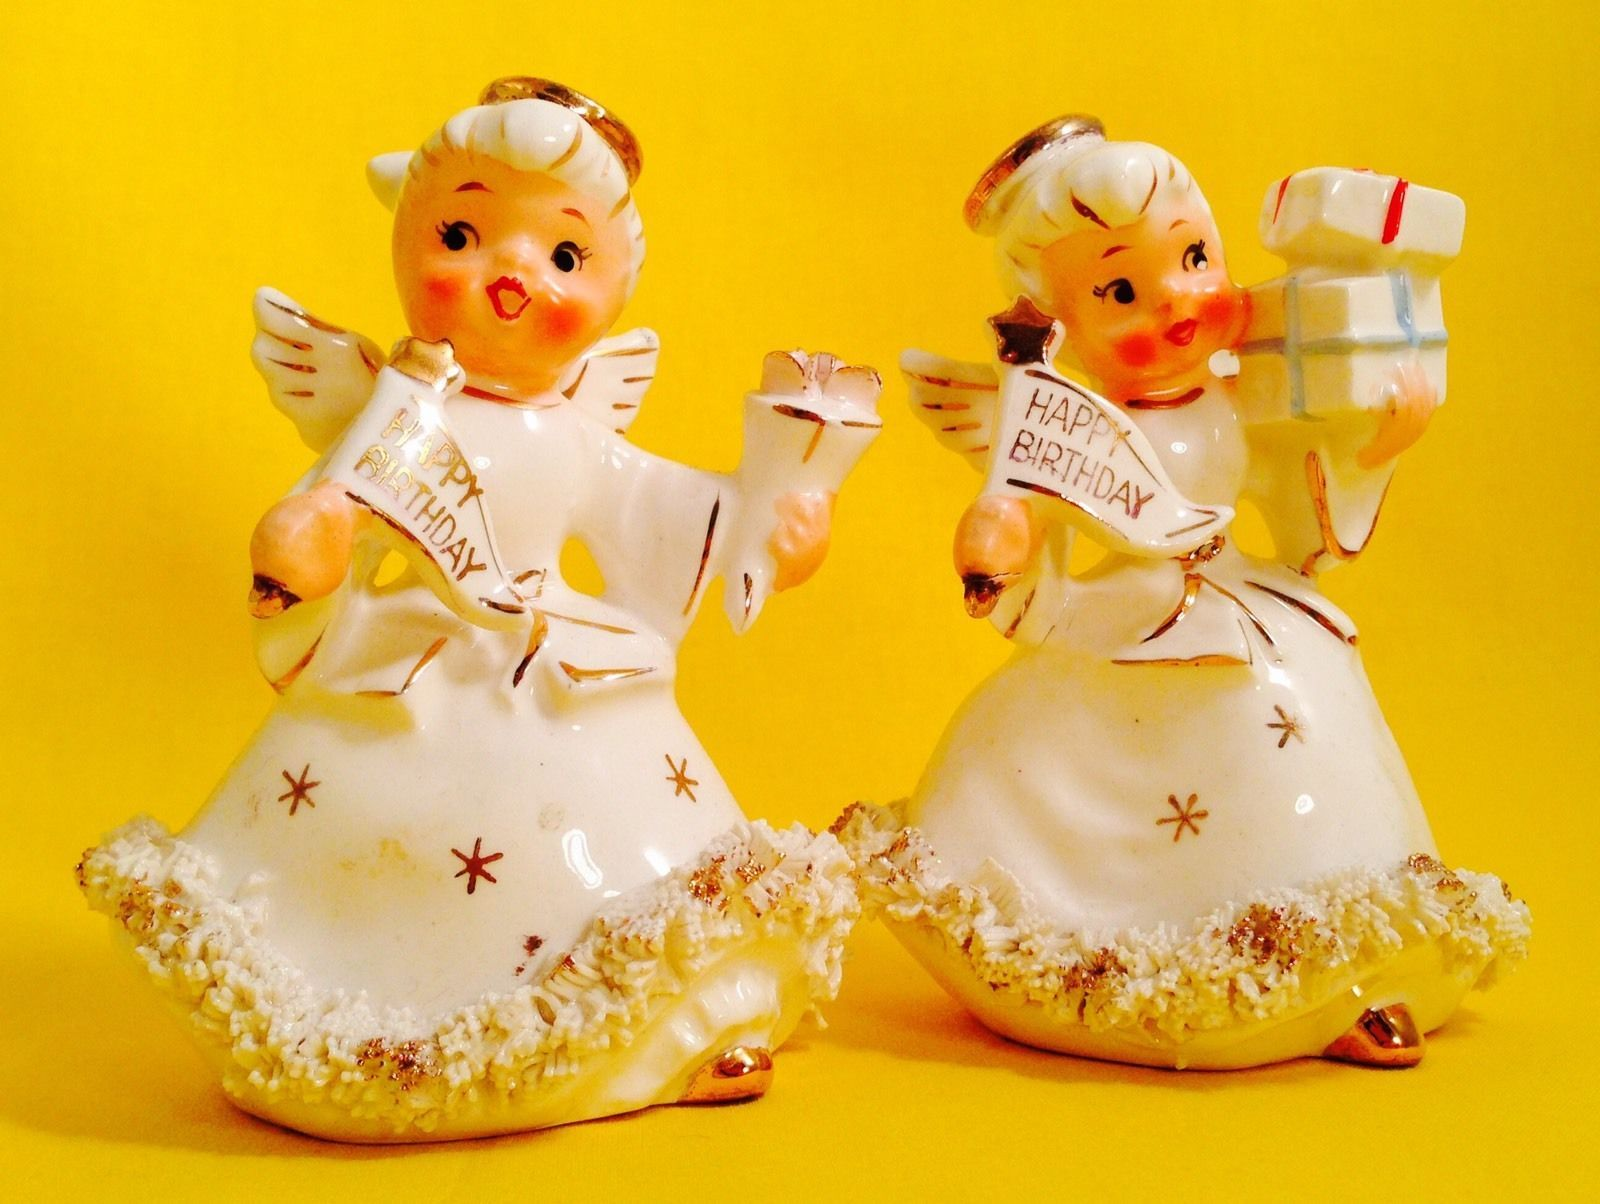 Happy birthday holt howard girl vintage figurine candle holders